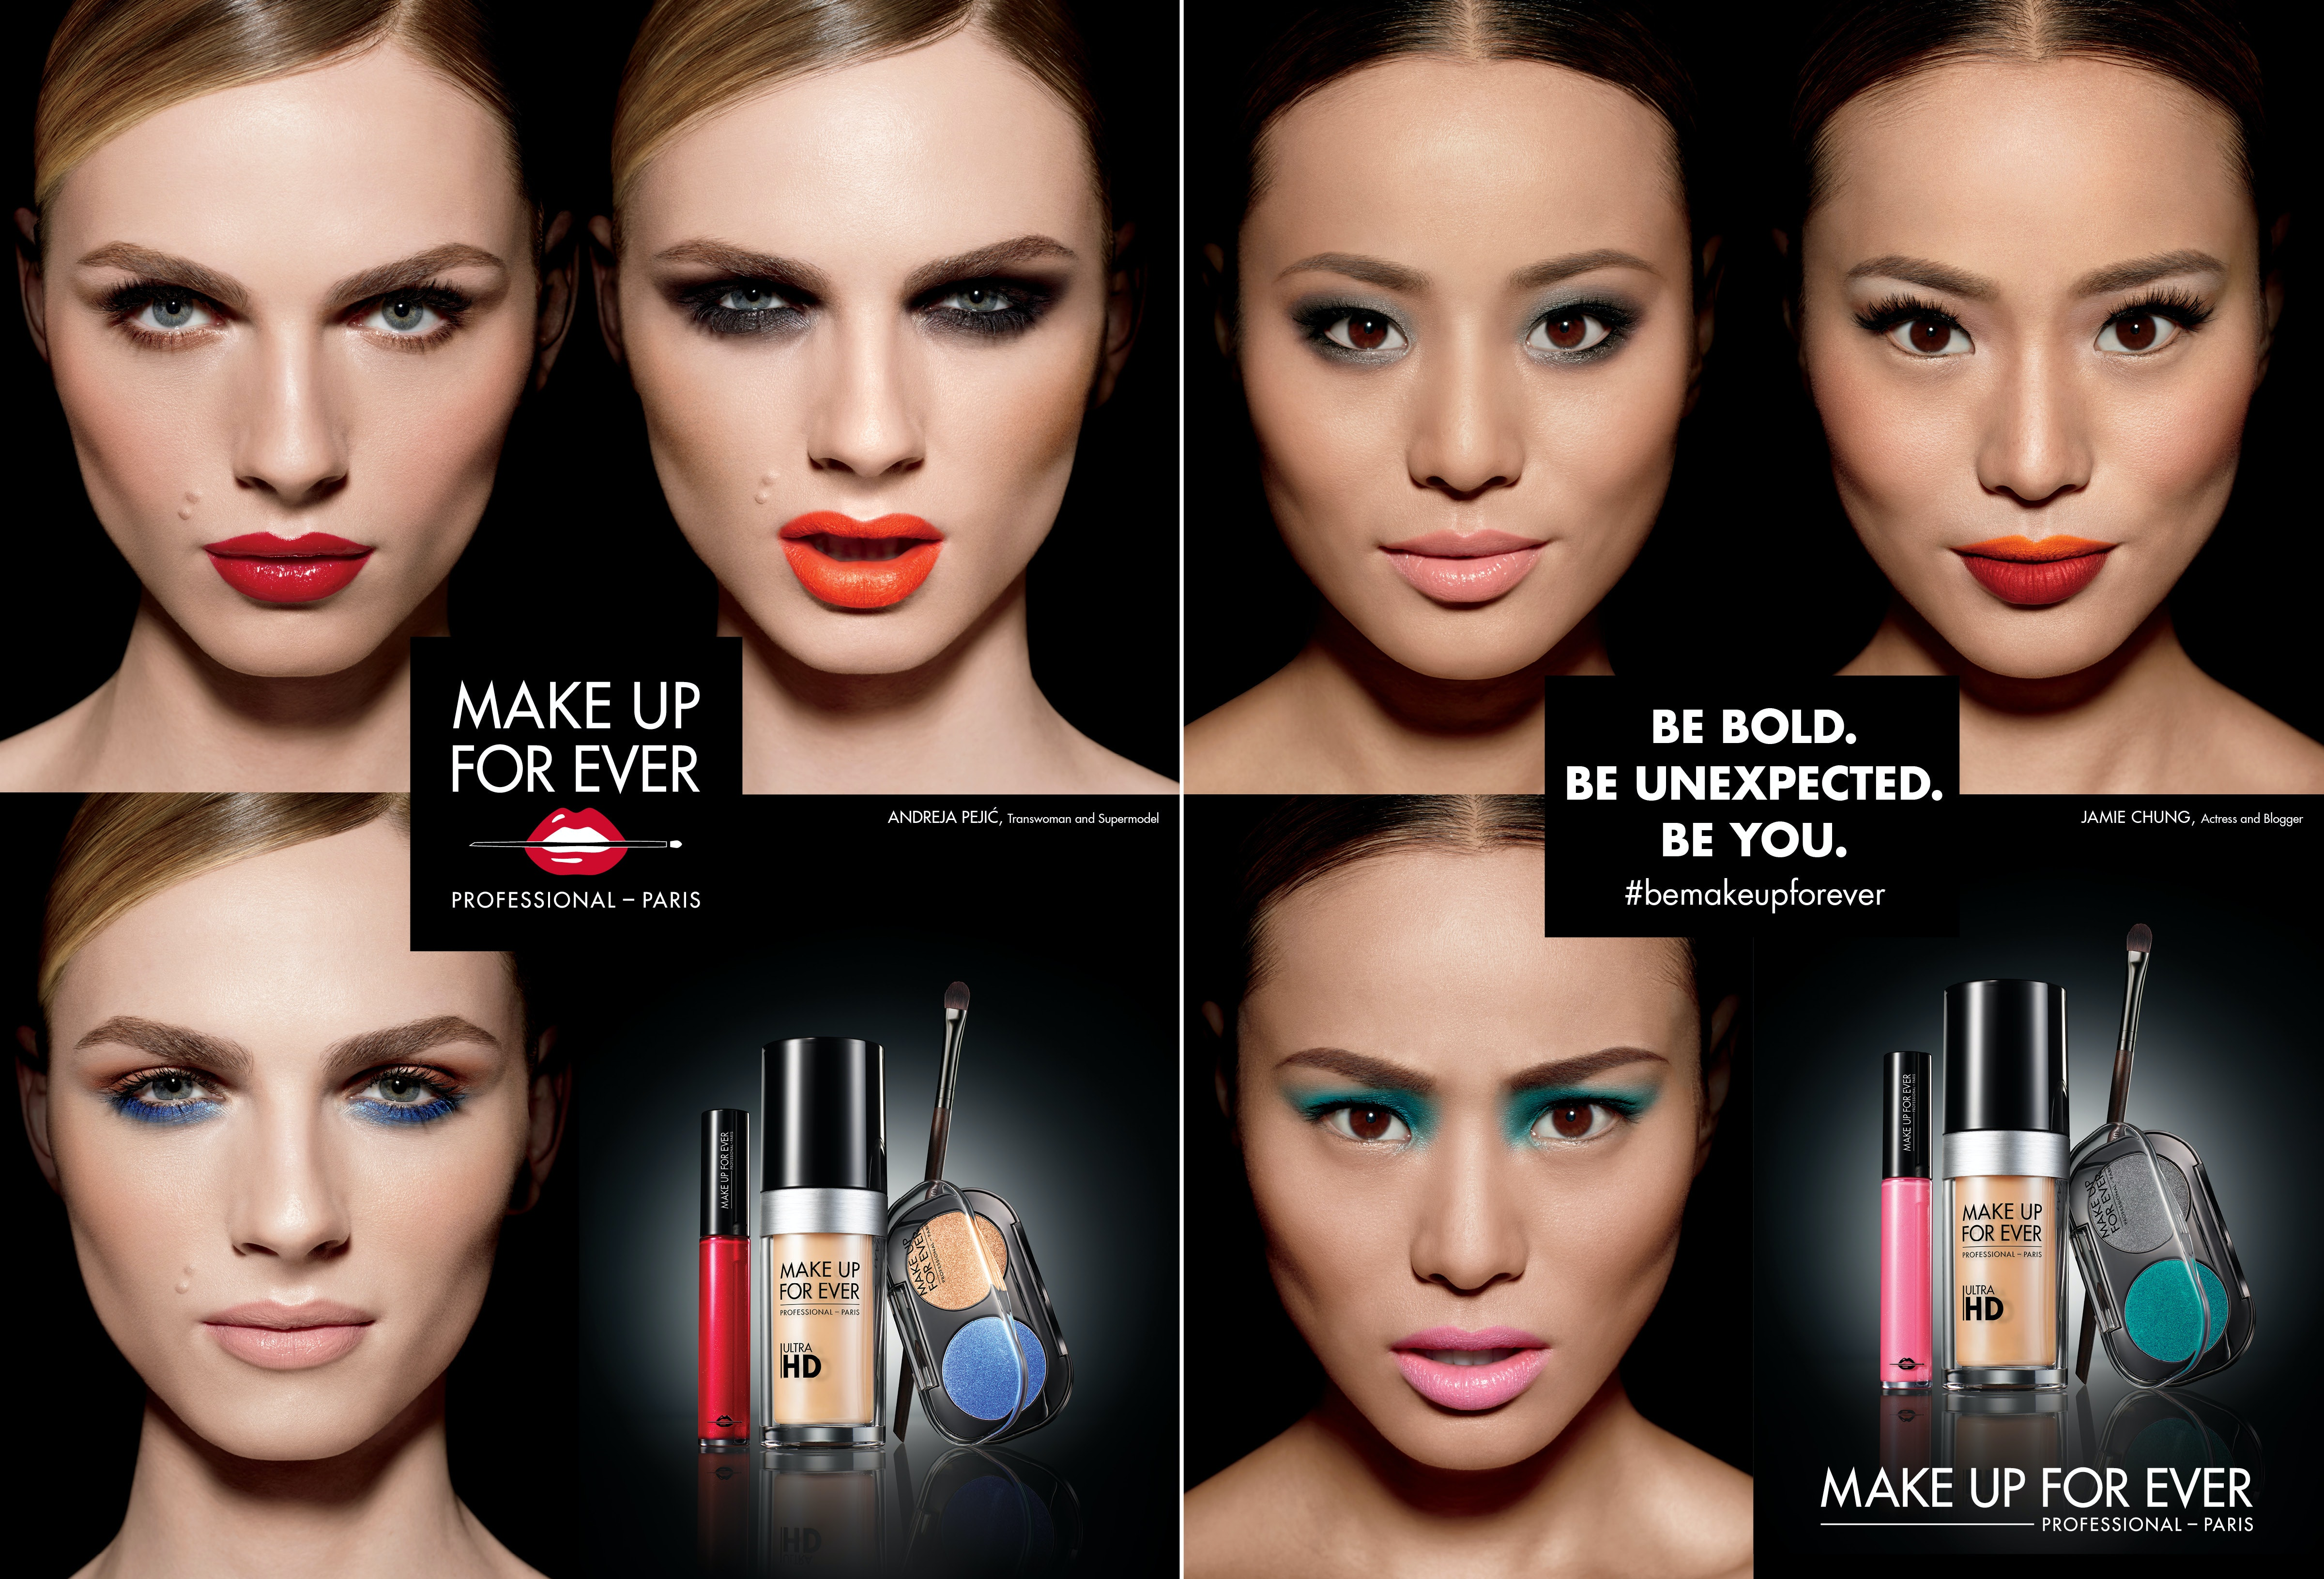 makeup forever. andreja pejic \u0026 jamie chung partner with make up for ever, and it\u0027s the diverse beauty campaign we\u0027ve been waiting makeup forever